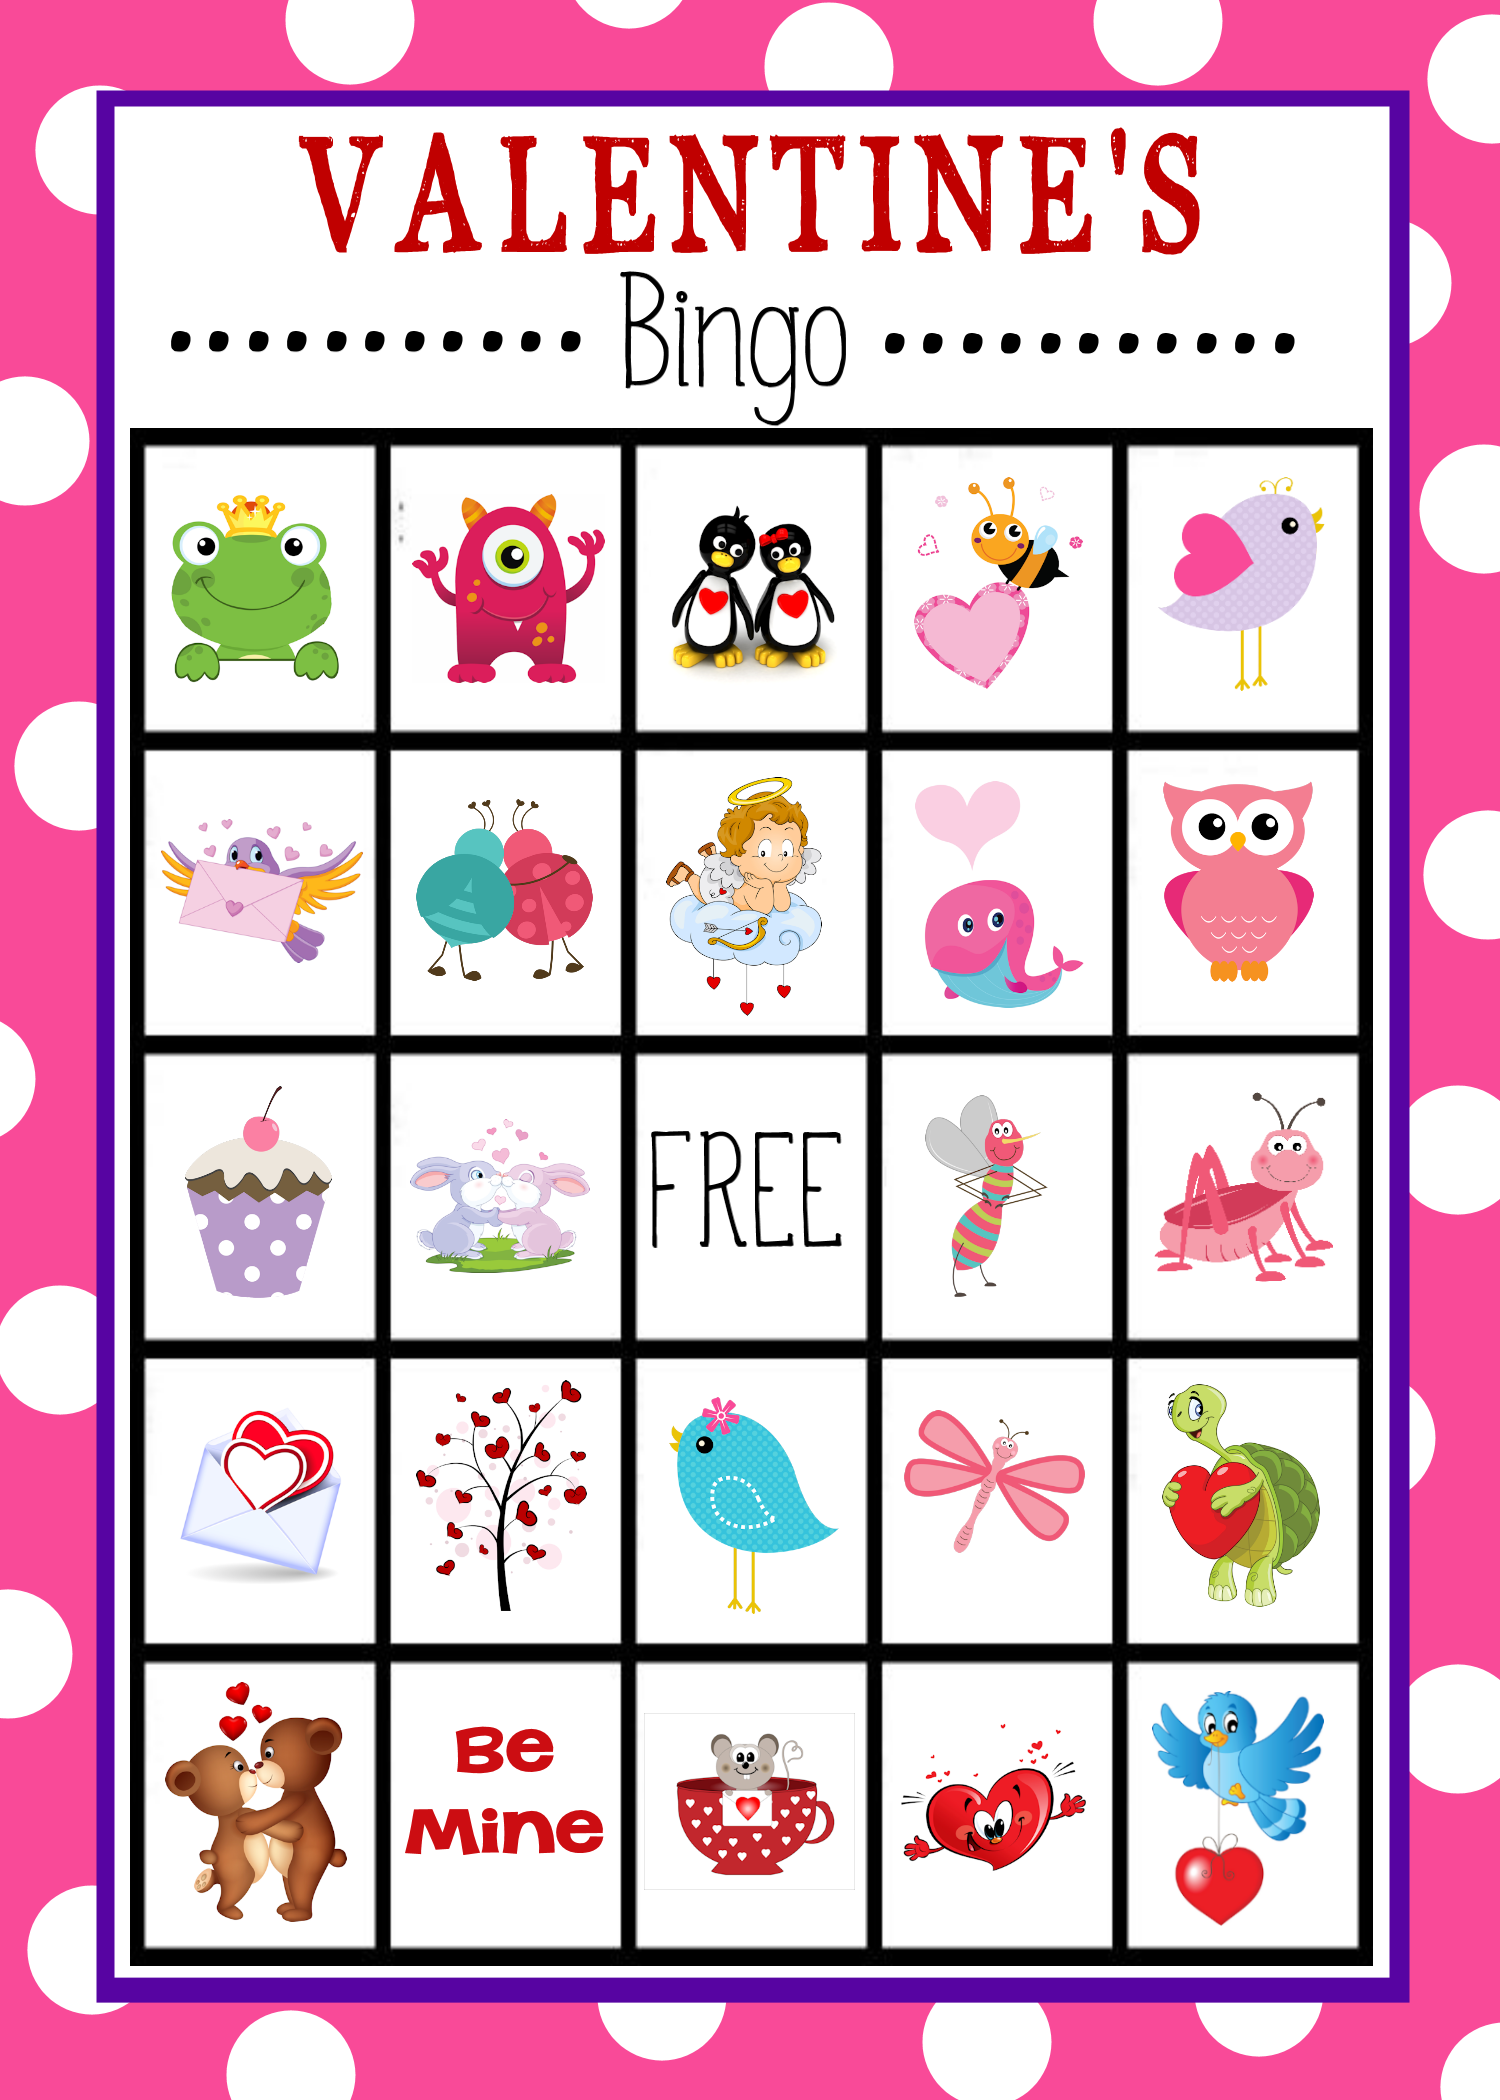 Free Bingo Template | Free Printable Valentine S Day Bingo Game Crazy Little Projects